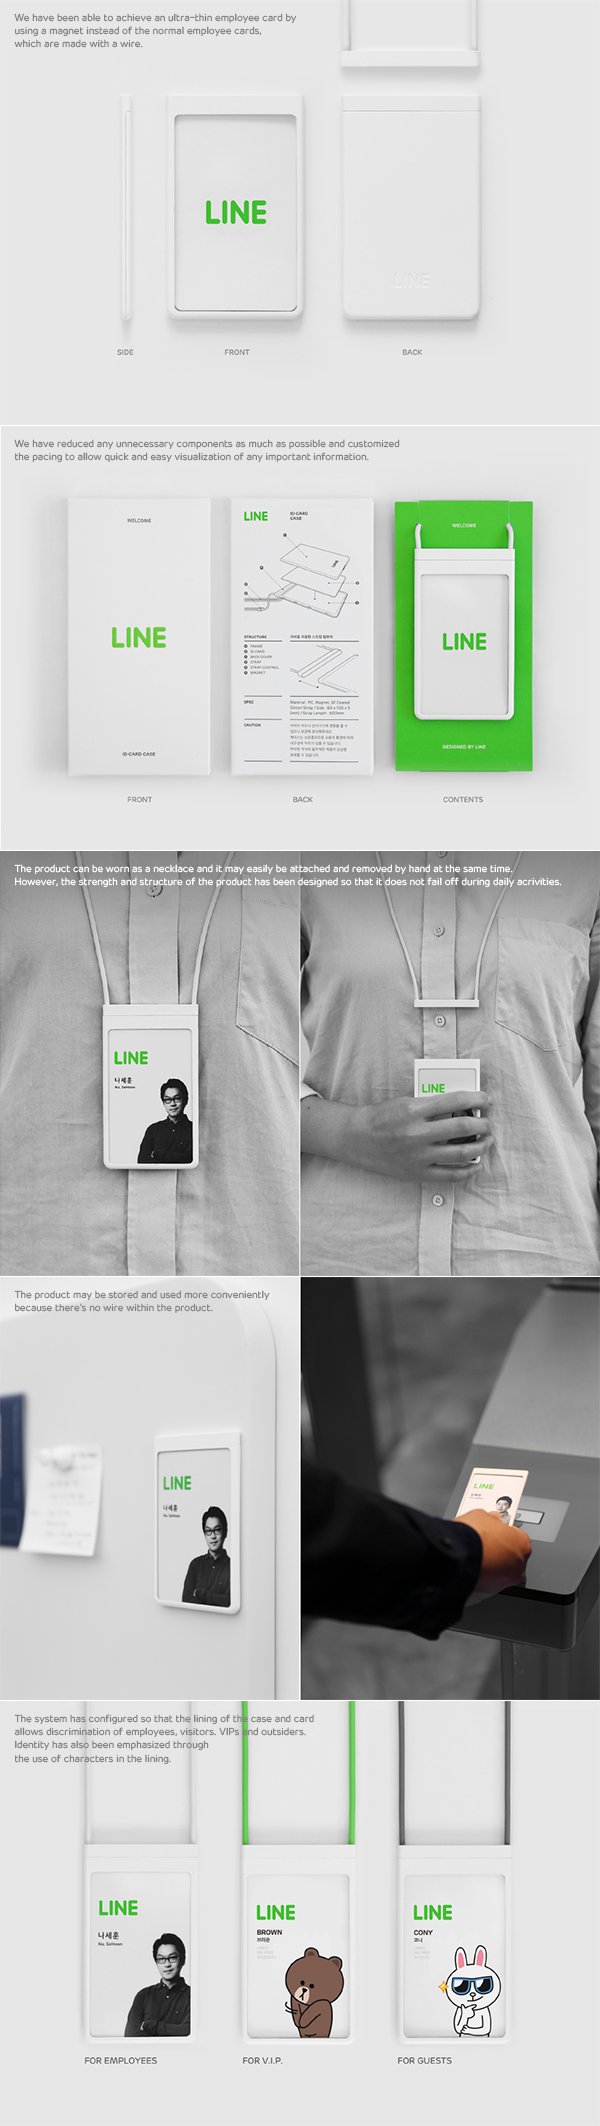 LINE ID CARD + MAGNETIC CASE on Industrial Design Served | Cool ...